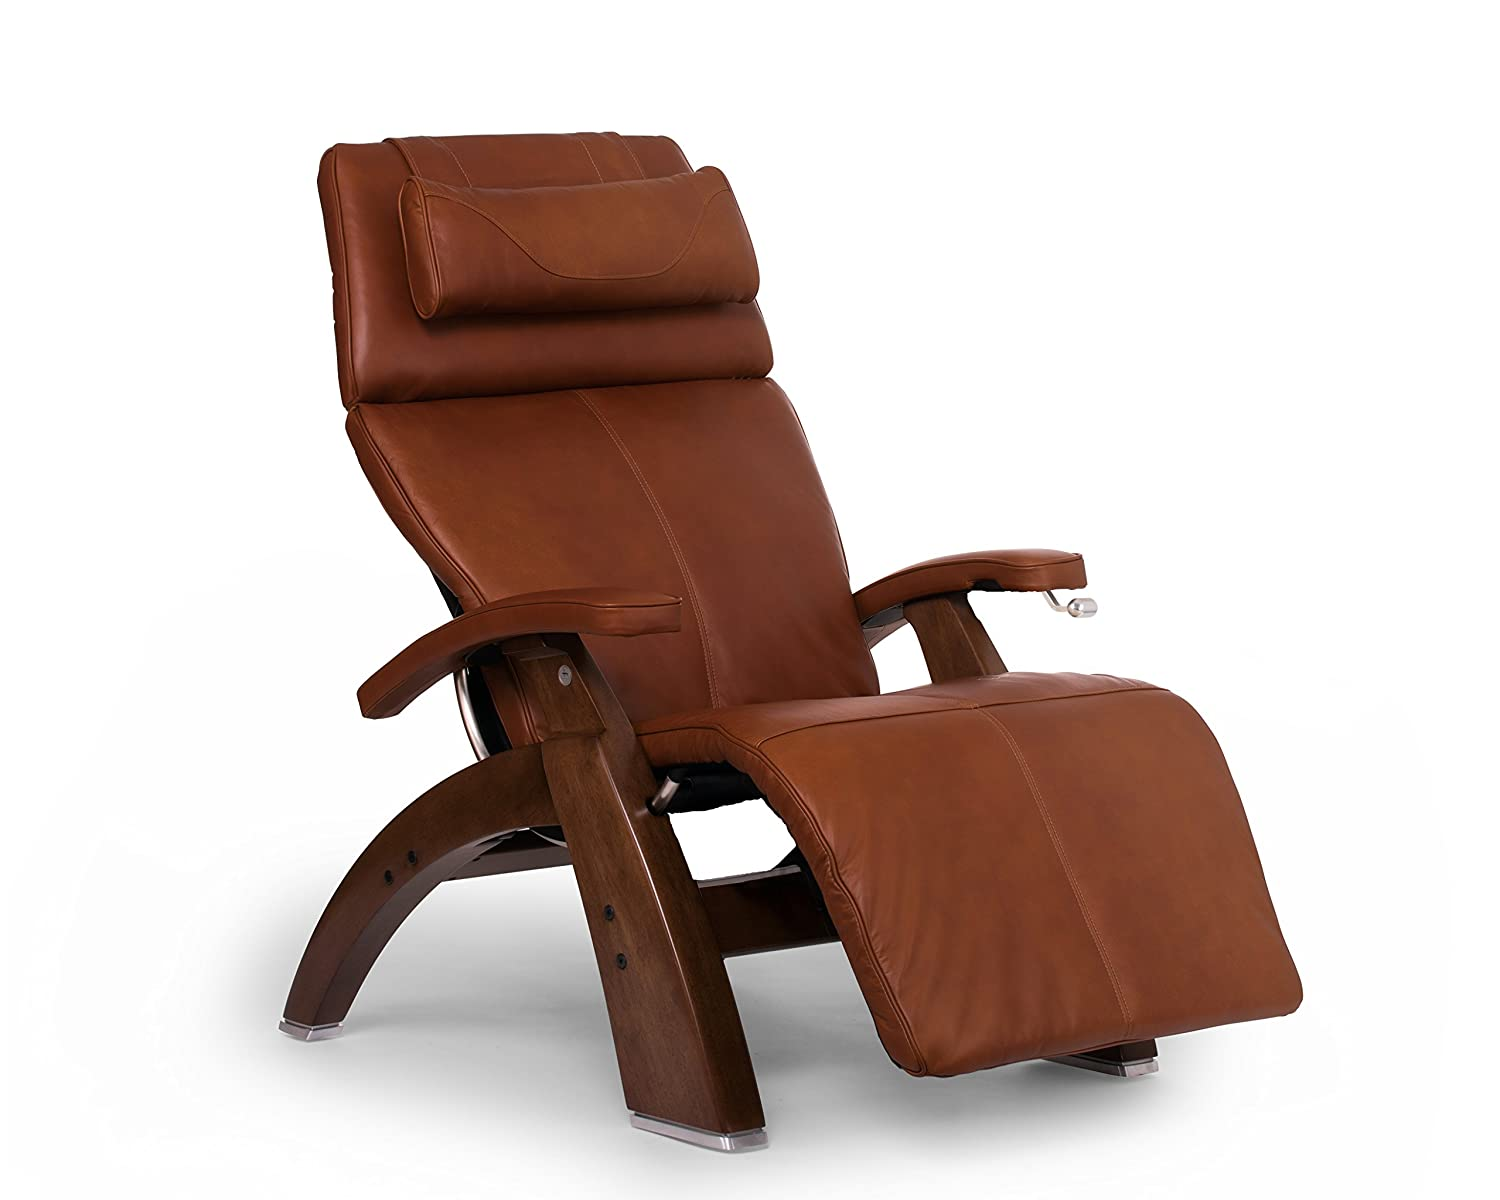 Best Zero Gravity Recliners Cuddly Home Advisors